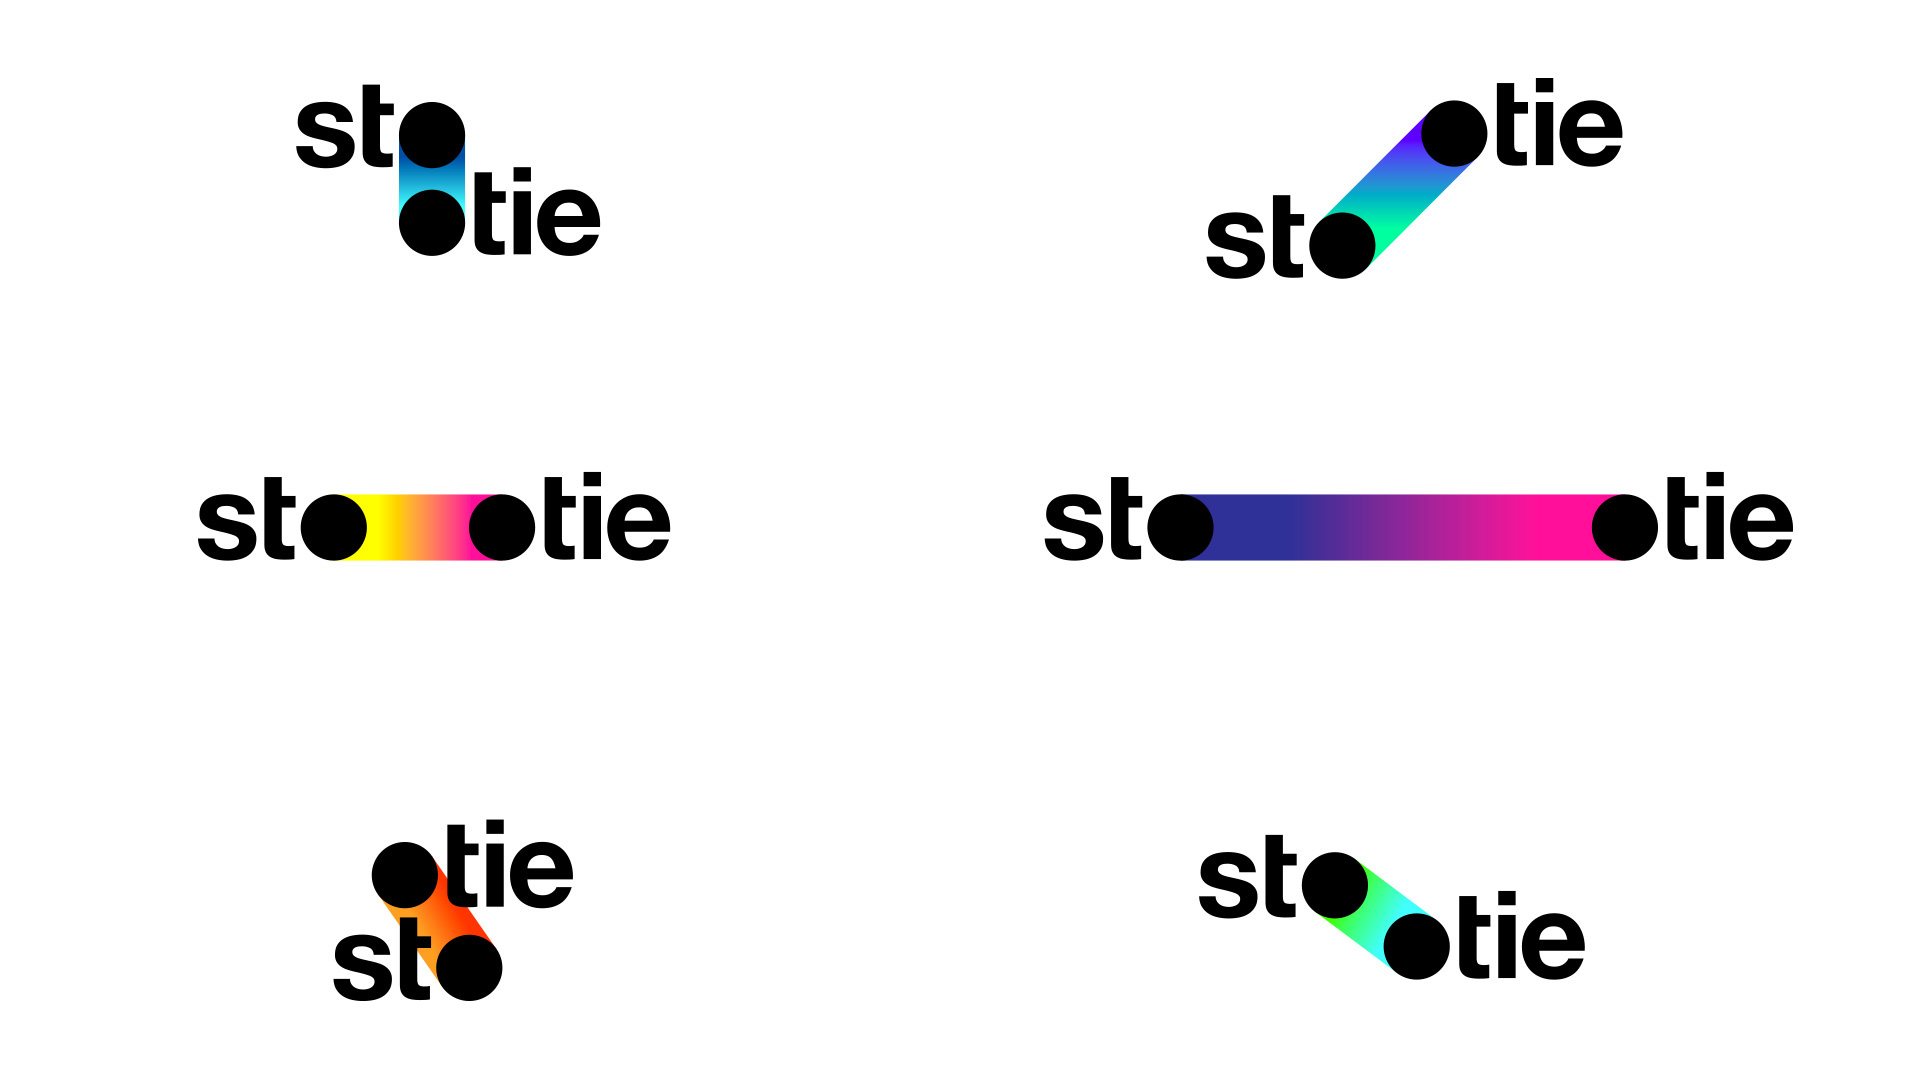 Redefining Stootie through a bold and colorful rebranding